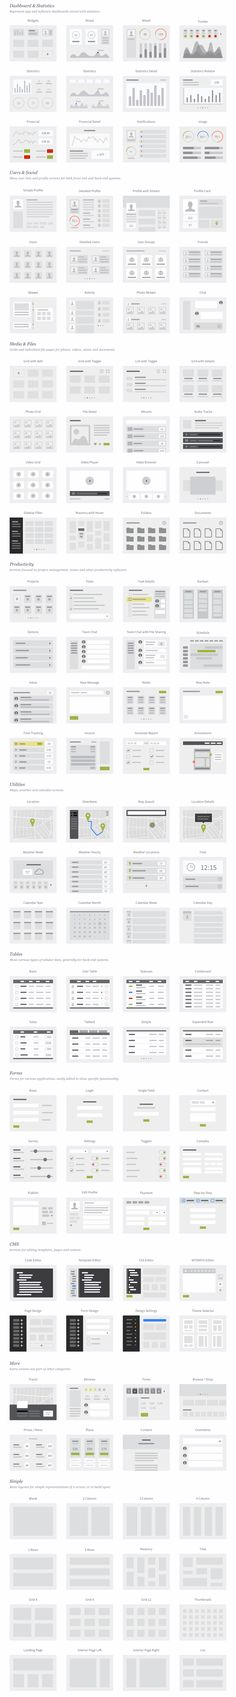 UX Kits UI Wireflows - Architecture, layout and flow for software interfaces. UX Kits UI Wireflows - Architecture, layout and flow for software interfaces. Wireframe, Design Development, Software Development, Web Design, Ui Patterns, Web Layout, Webpage Layout, Behance, Screen Design